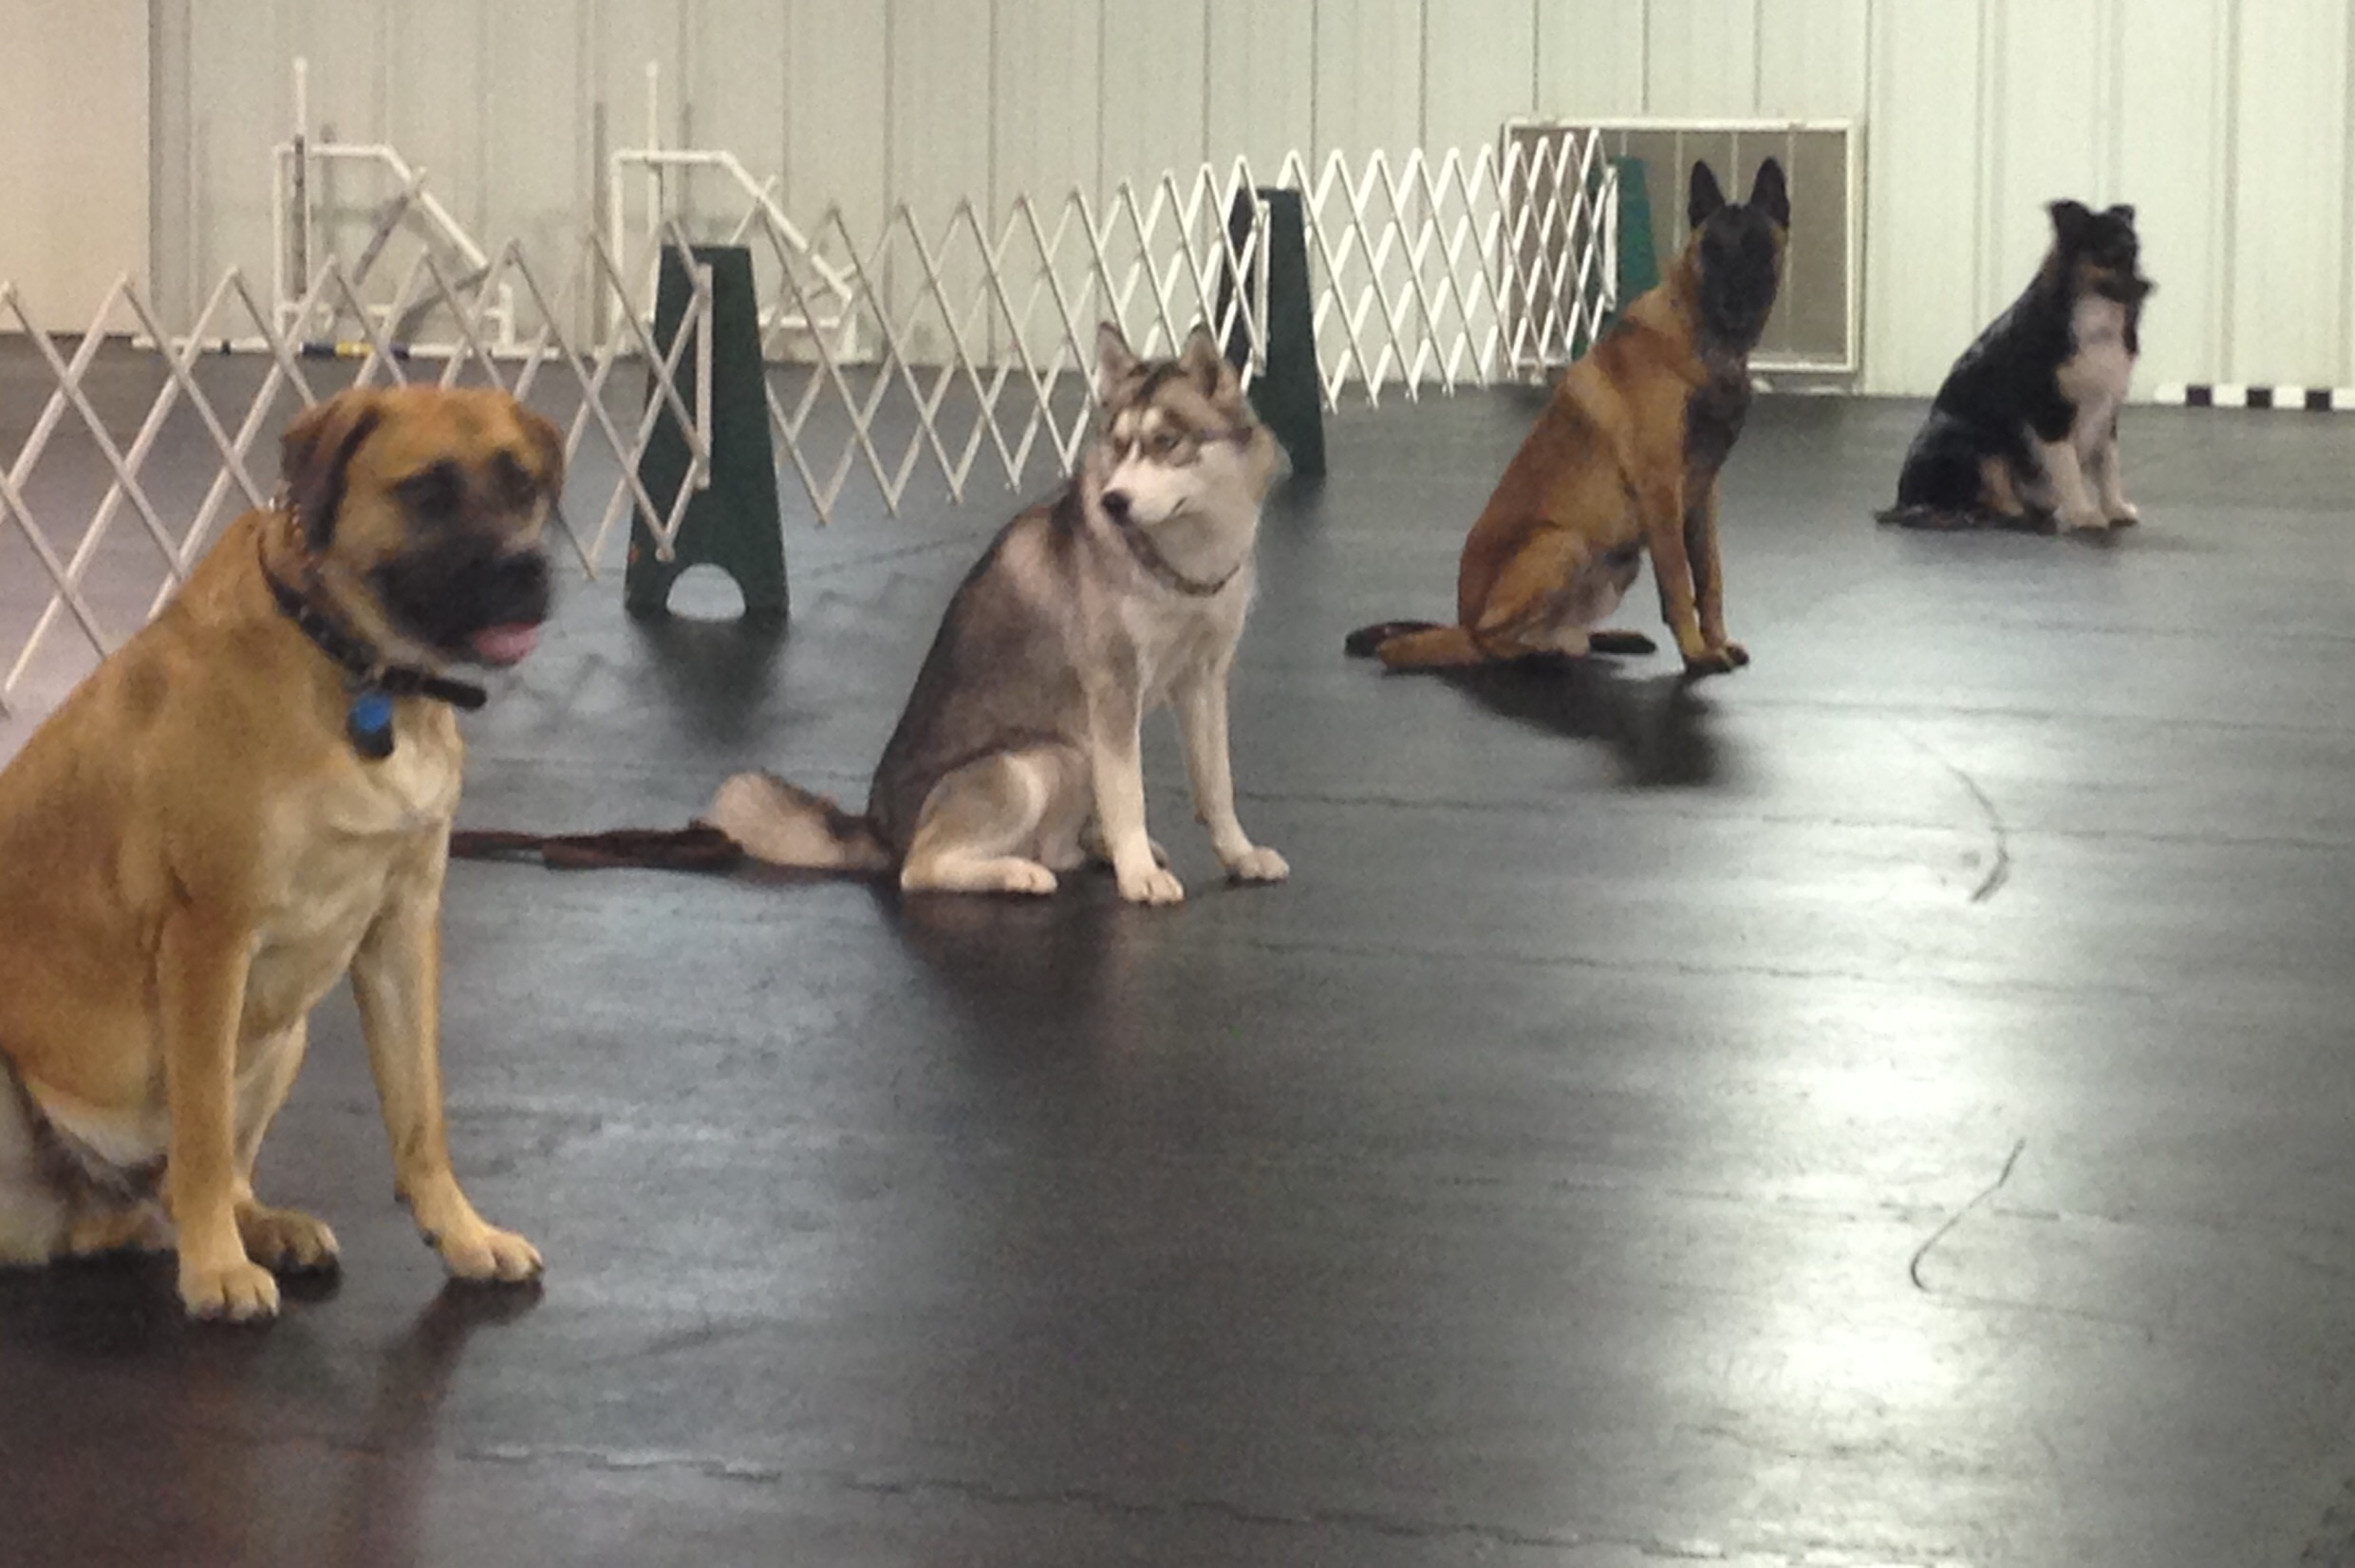 Beginner Obedience, Sit Stay photo by Kyle Rives